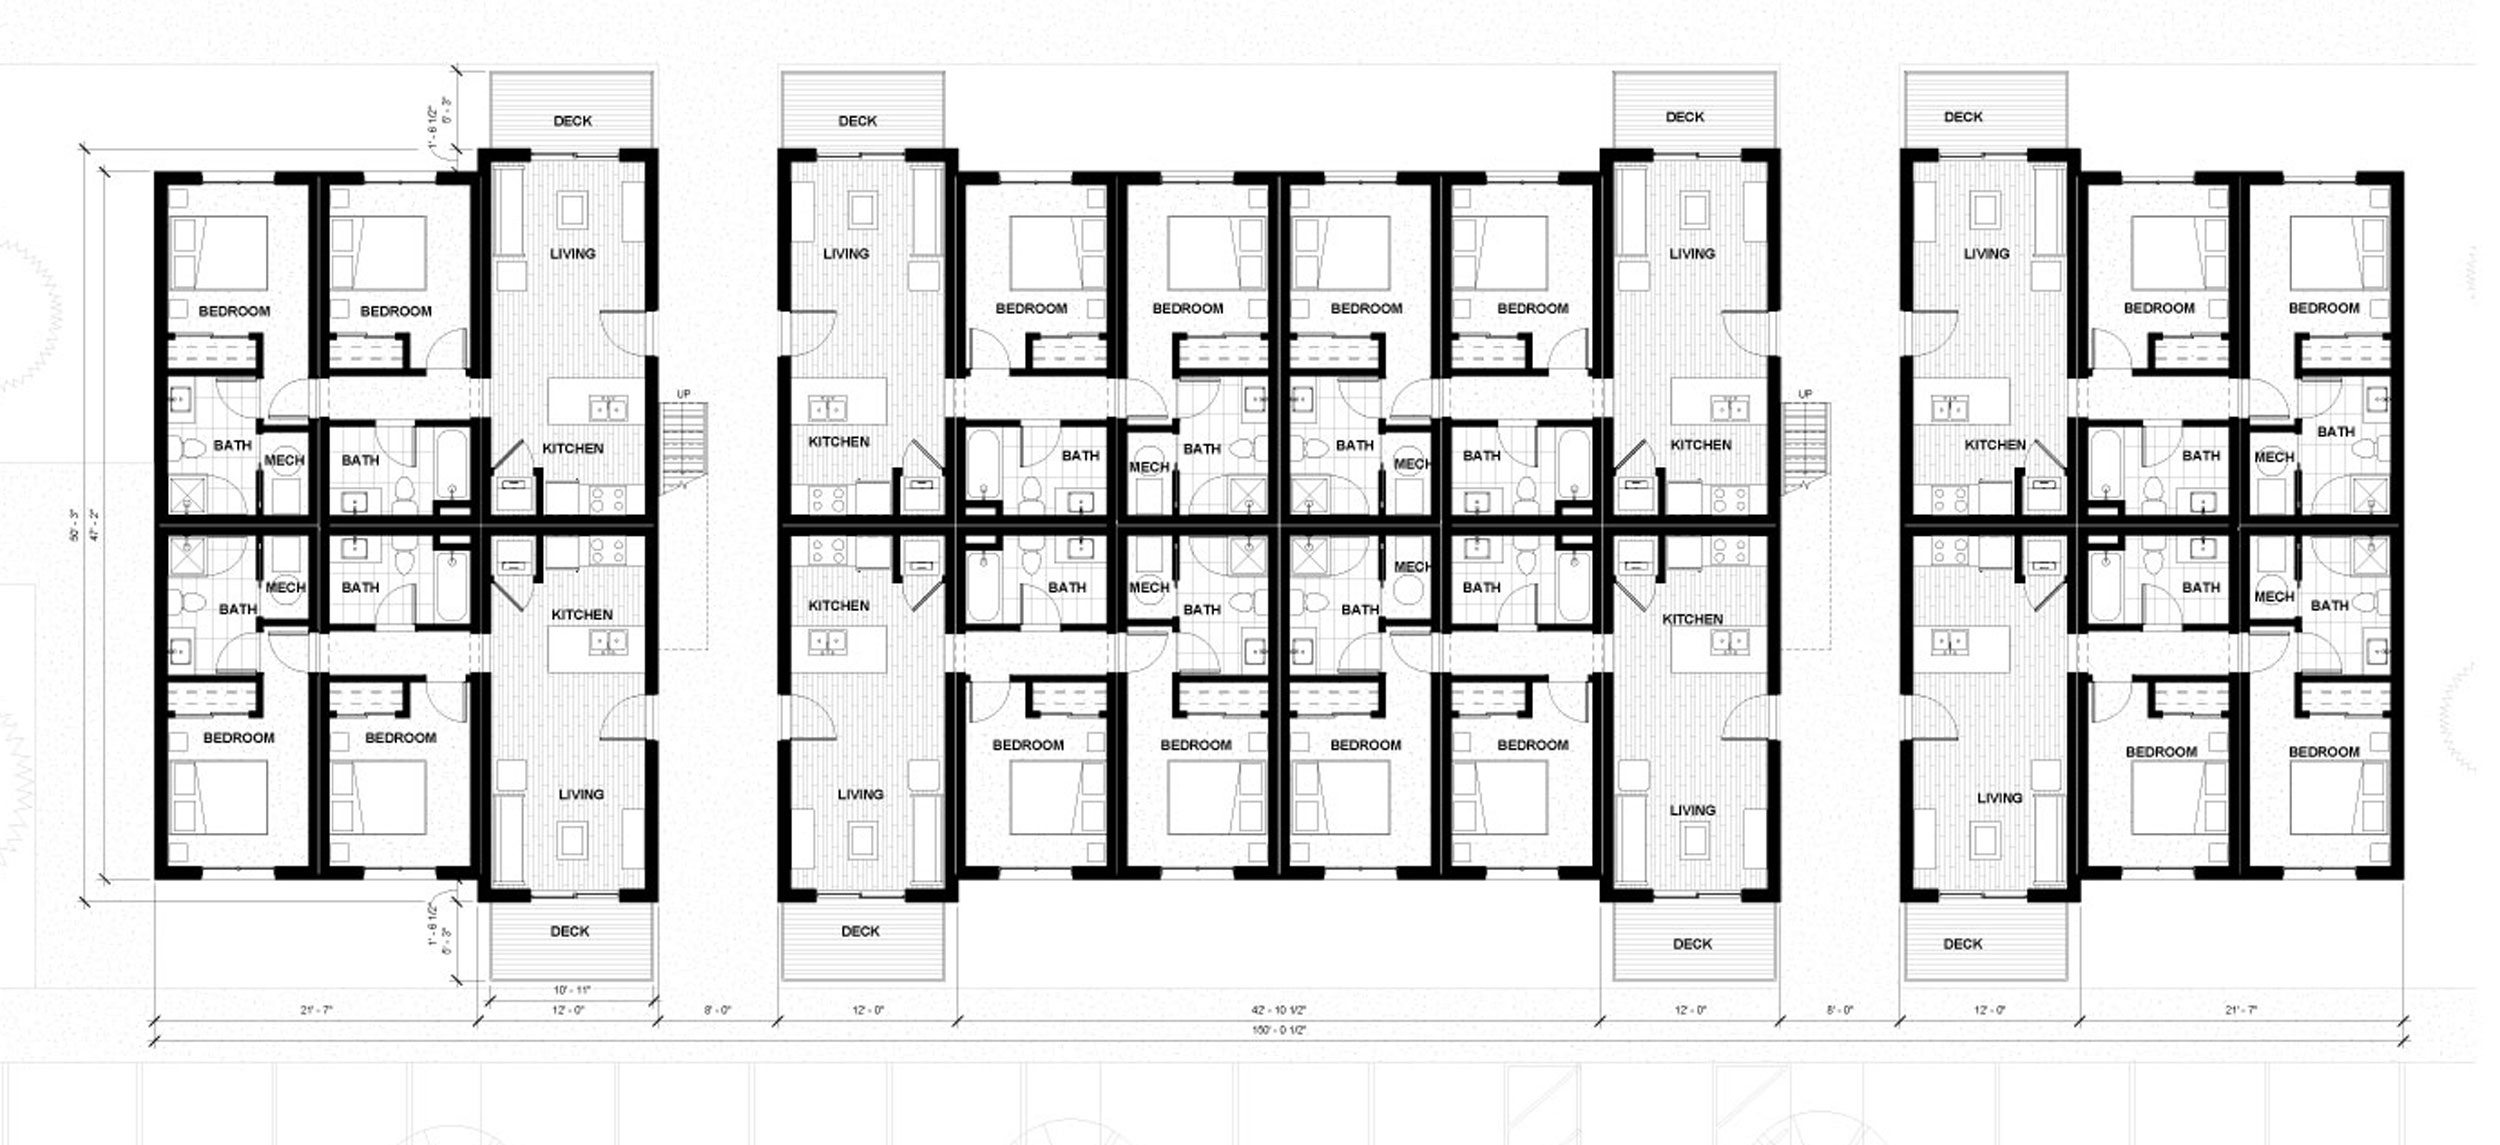 Multifamily-first-floor-plan.jpg